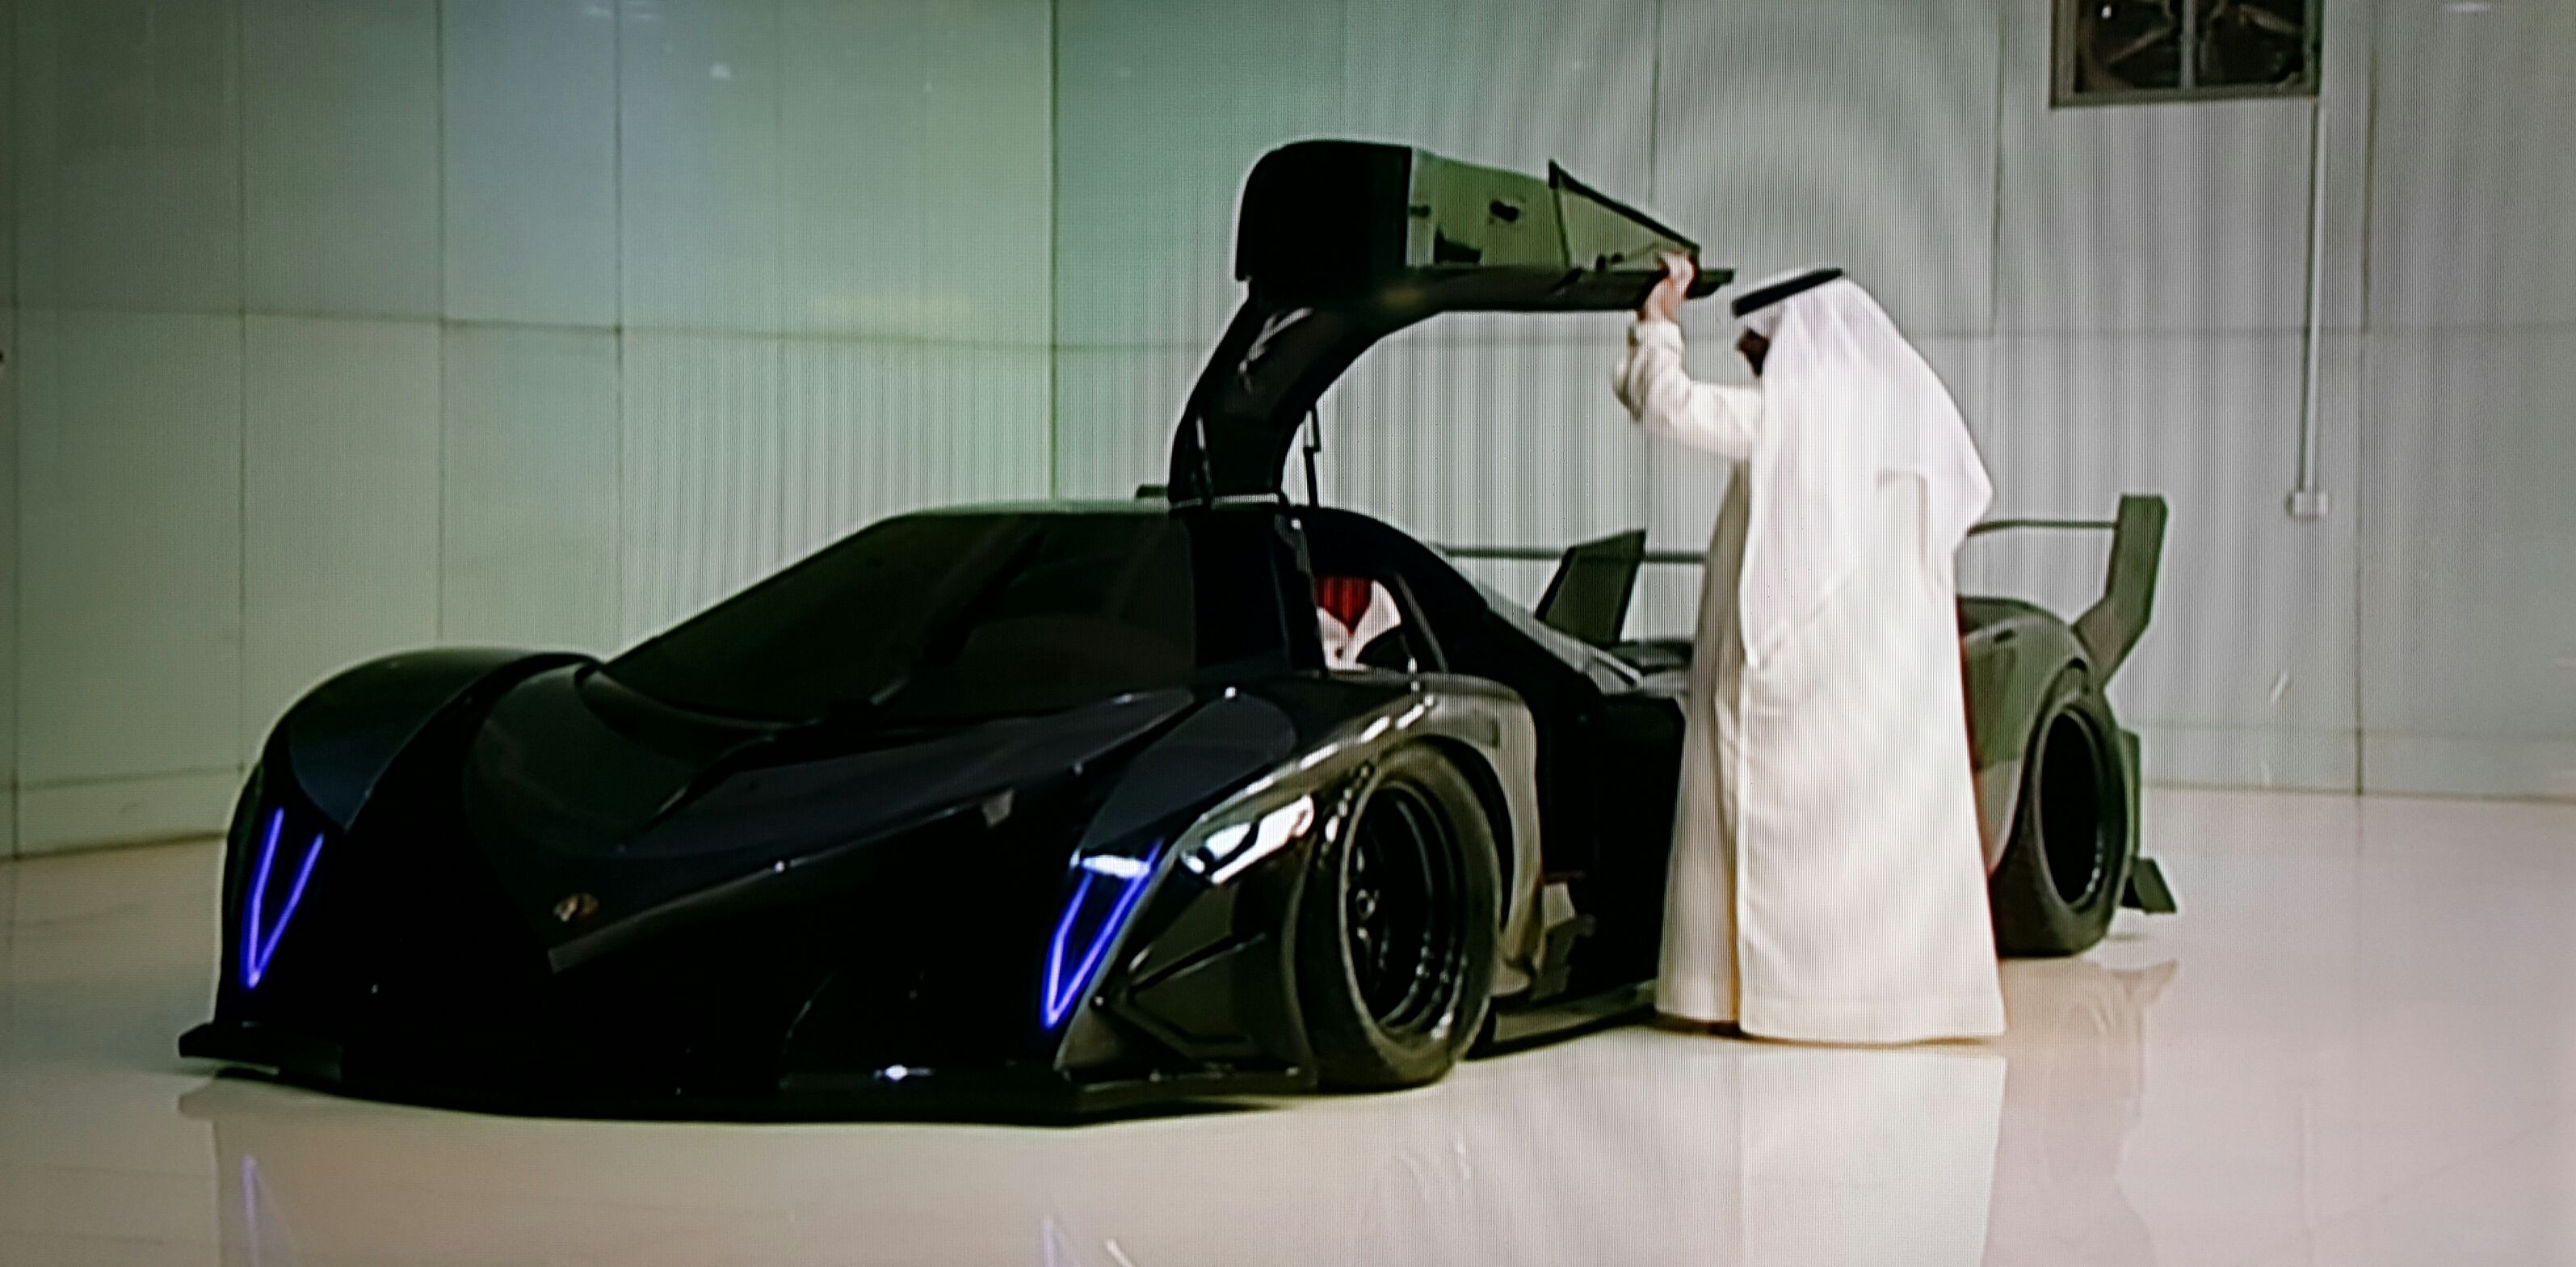 Devel Sixteen Bing Images Super Cars Motor Works Tractor Tanks